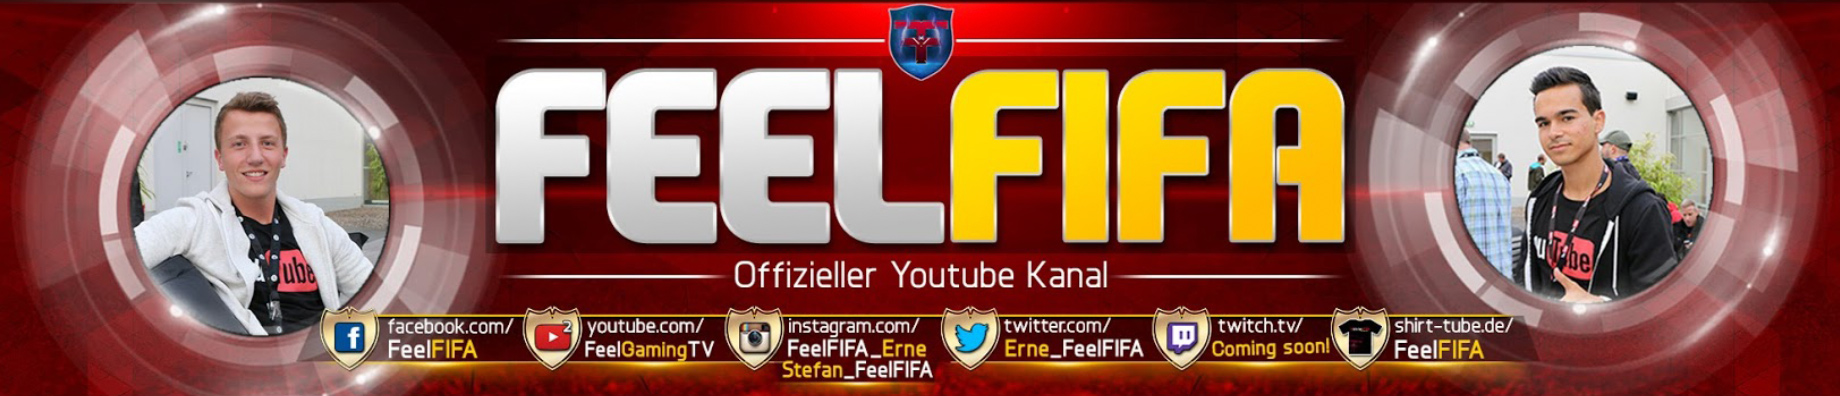 feelfifa_banner_website_water